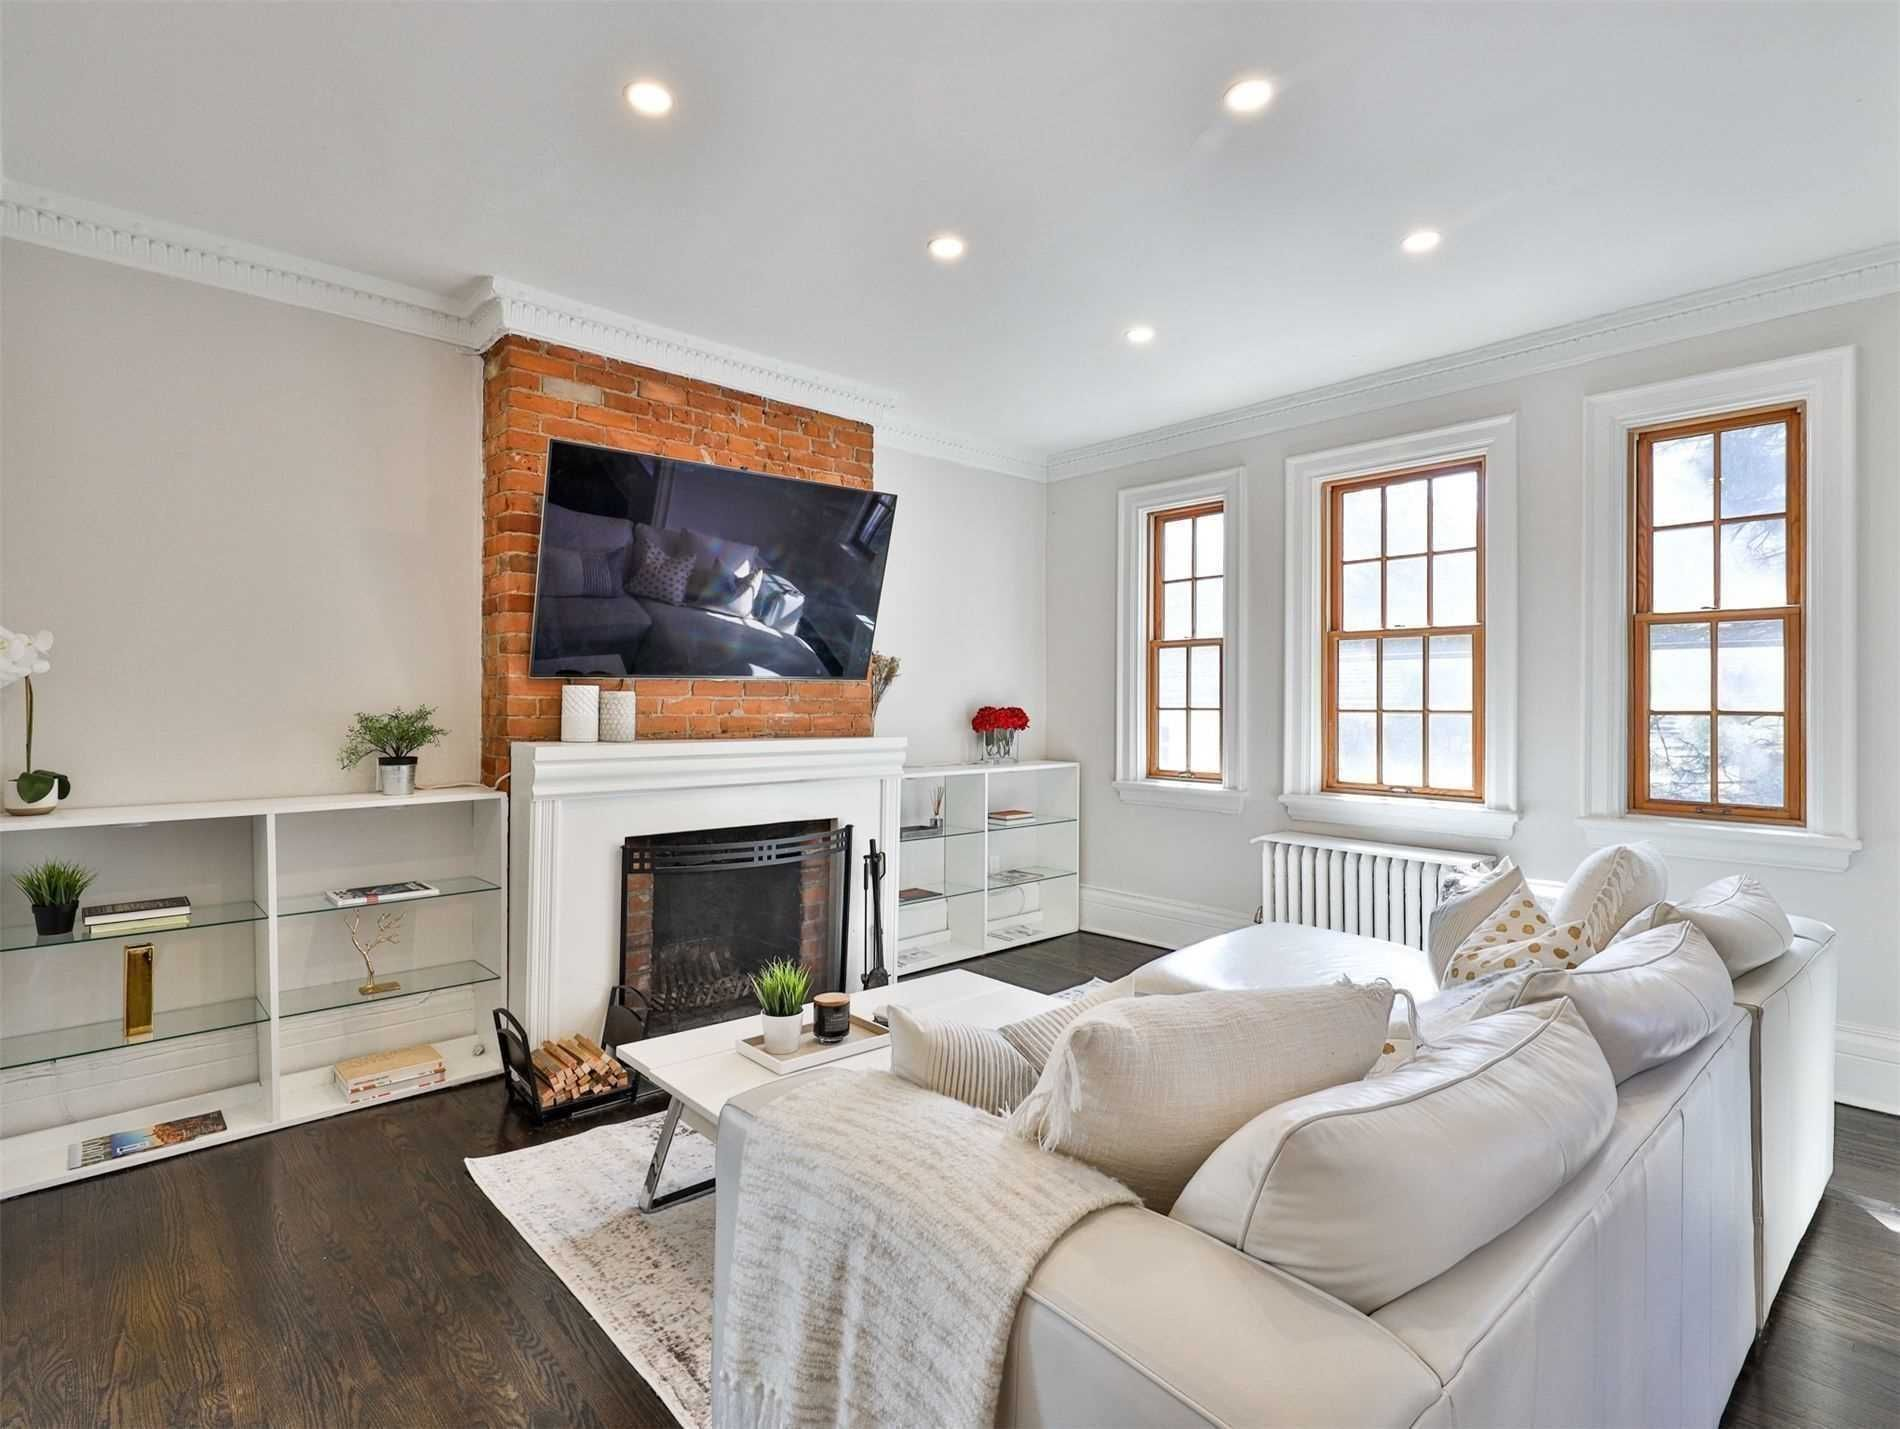 291 Ontario St, unit 6 for sale in Toronto - image #2